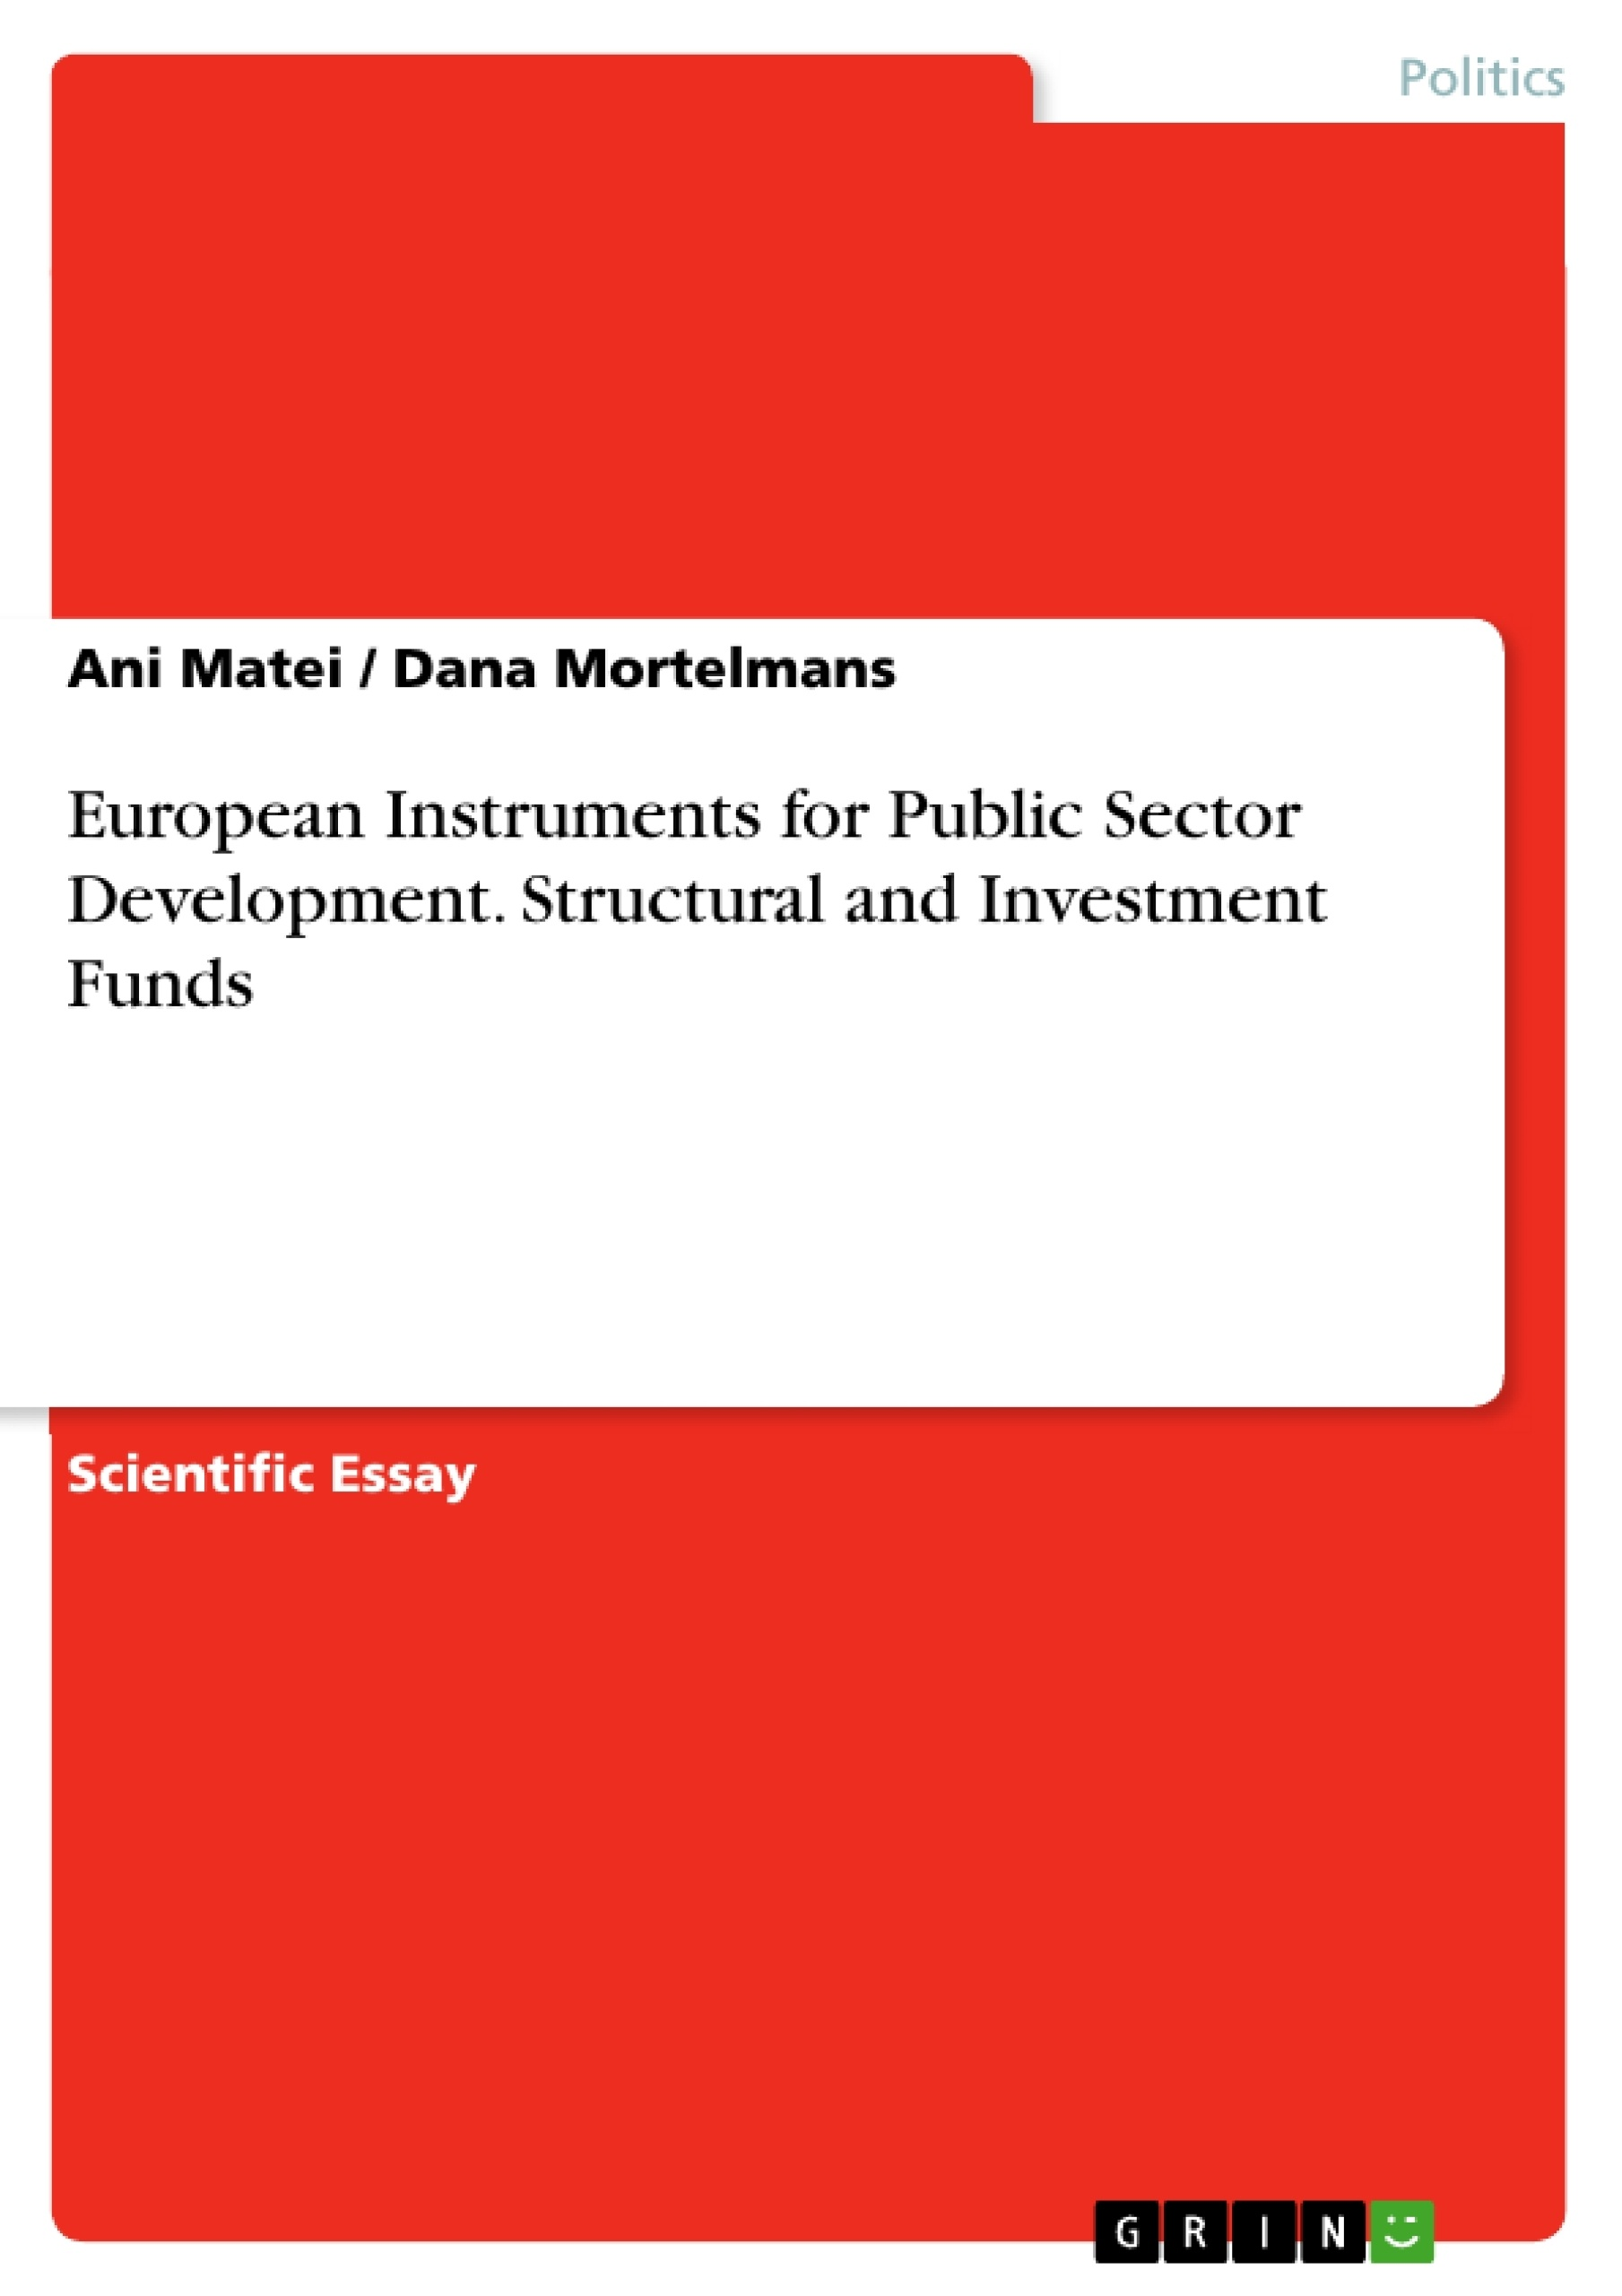 Title: European Instruments for Public Sector Development. Structural and Investment Funds